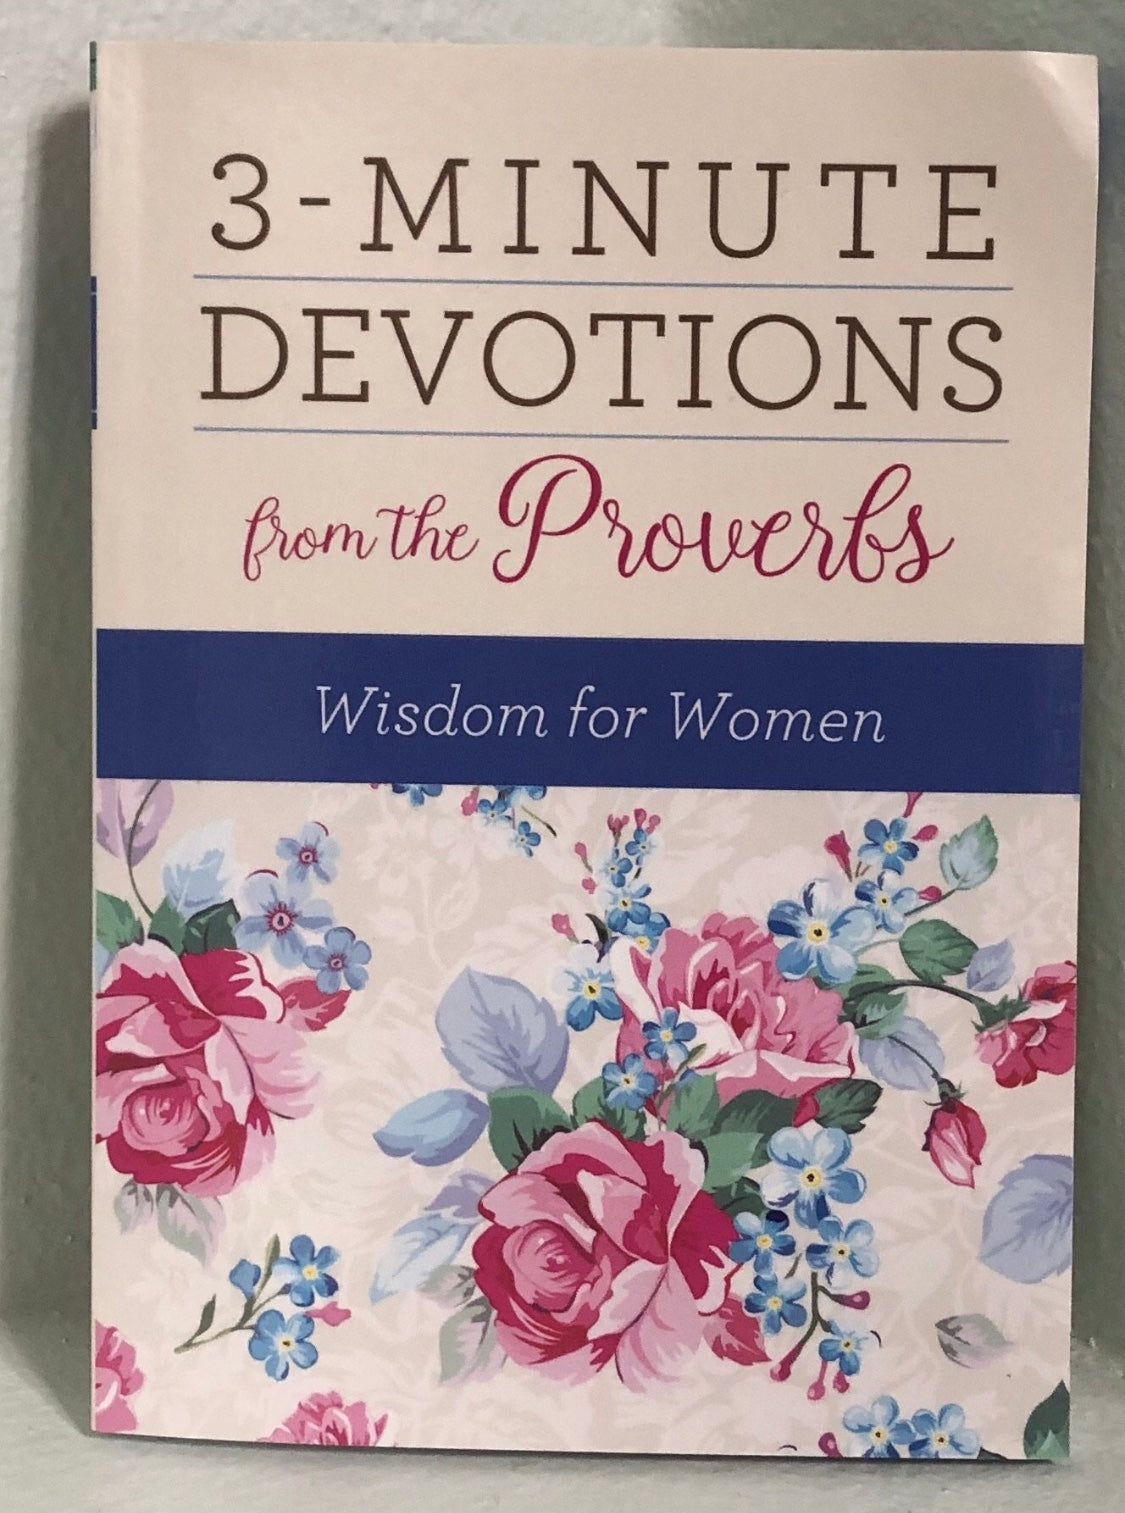 3 Minute Devotions from the Proverbs